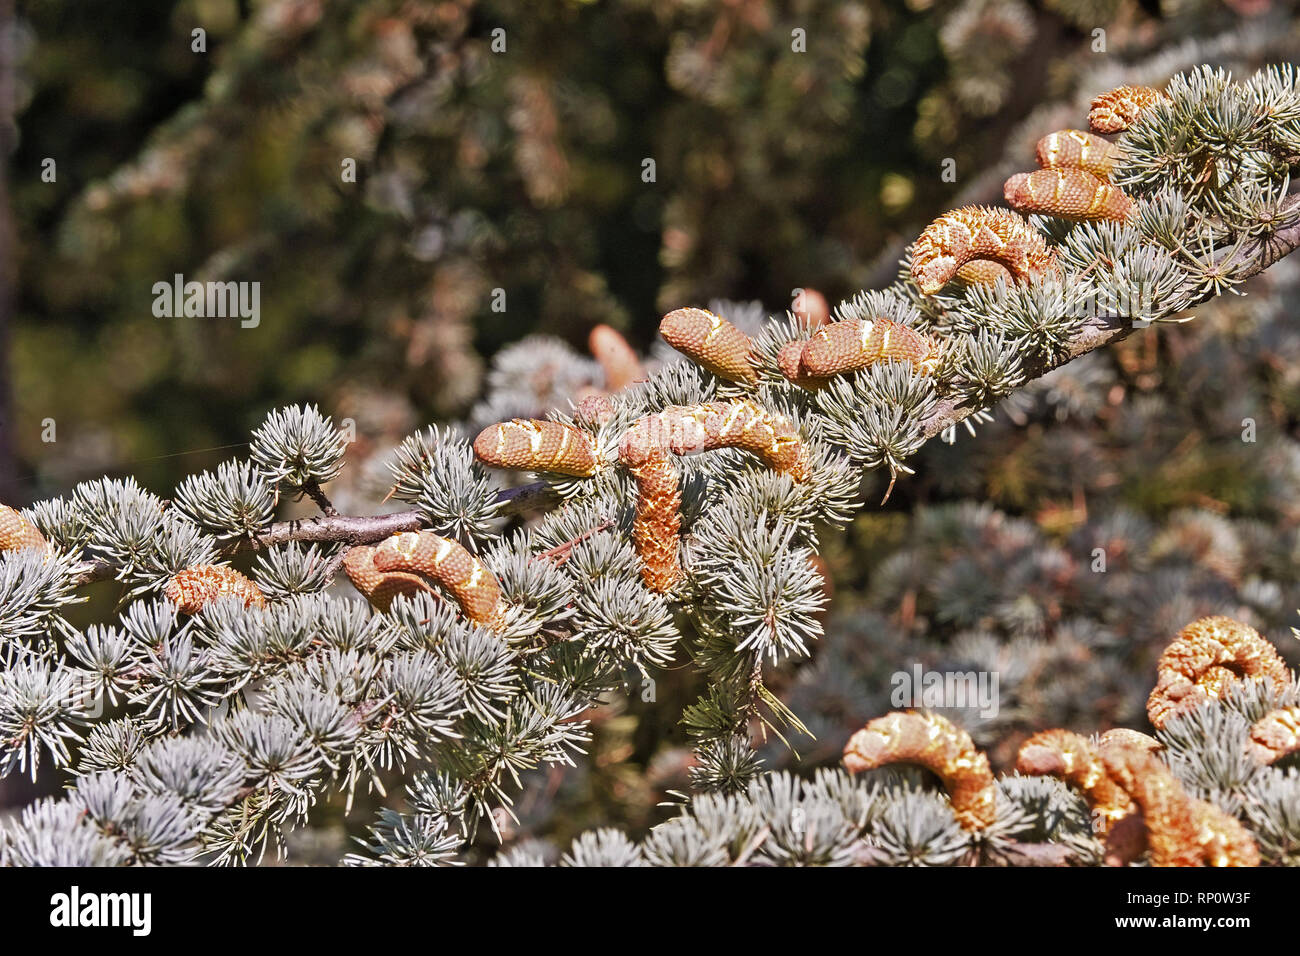 needle-like leaves and mature male fruits of the atlas cedar - Stock Image